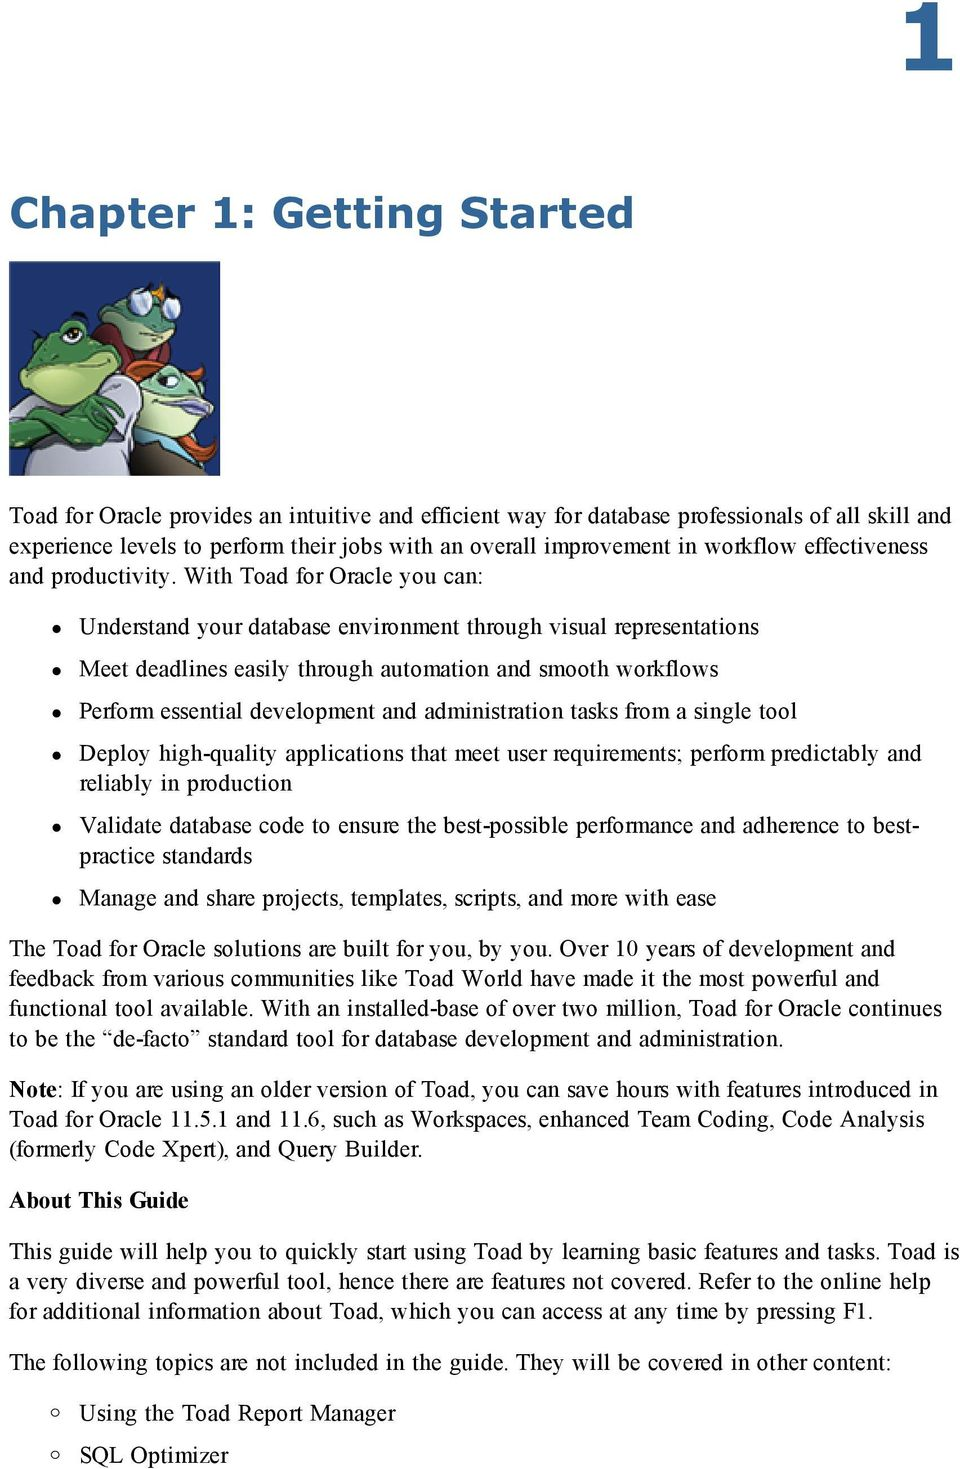 Toad for Oracle Guide to Using Toad - PDF